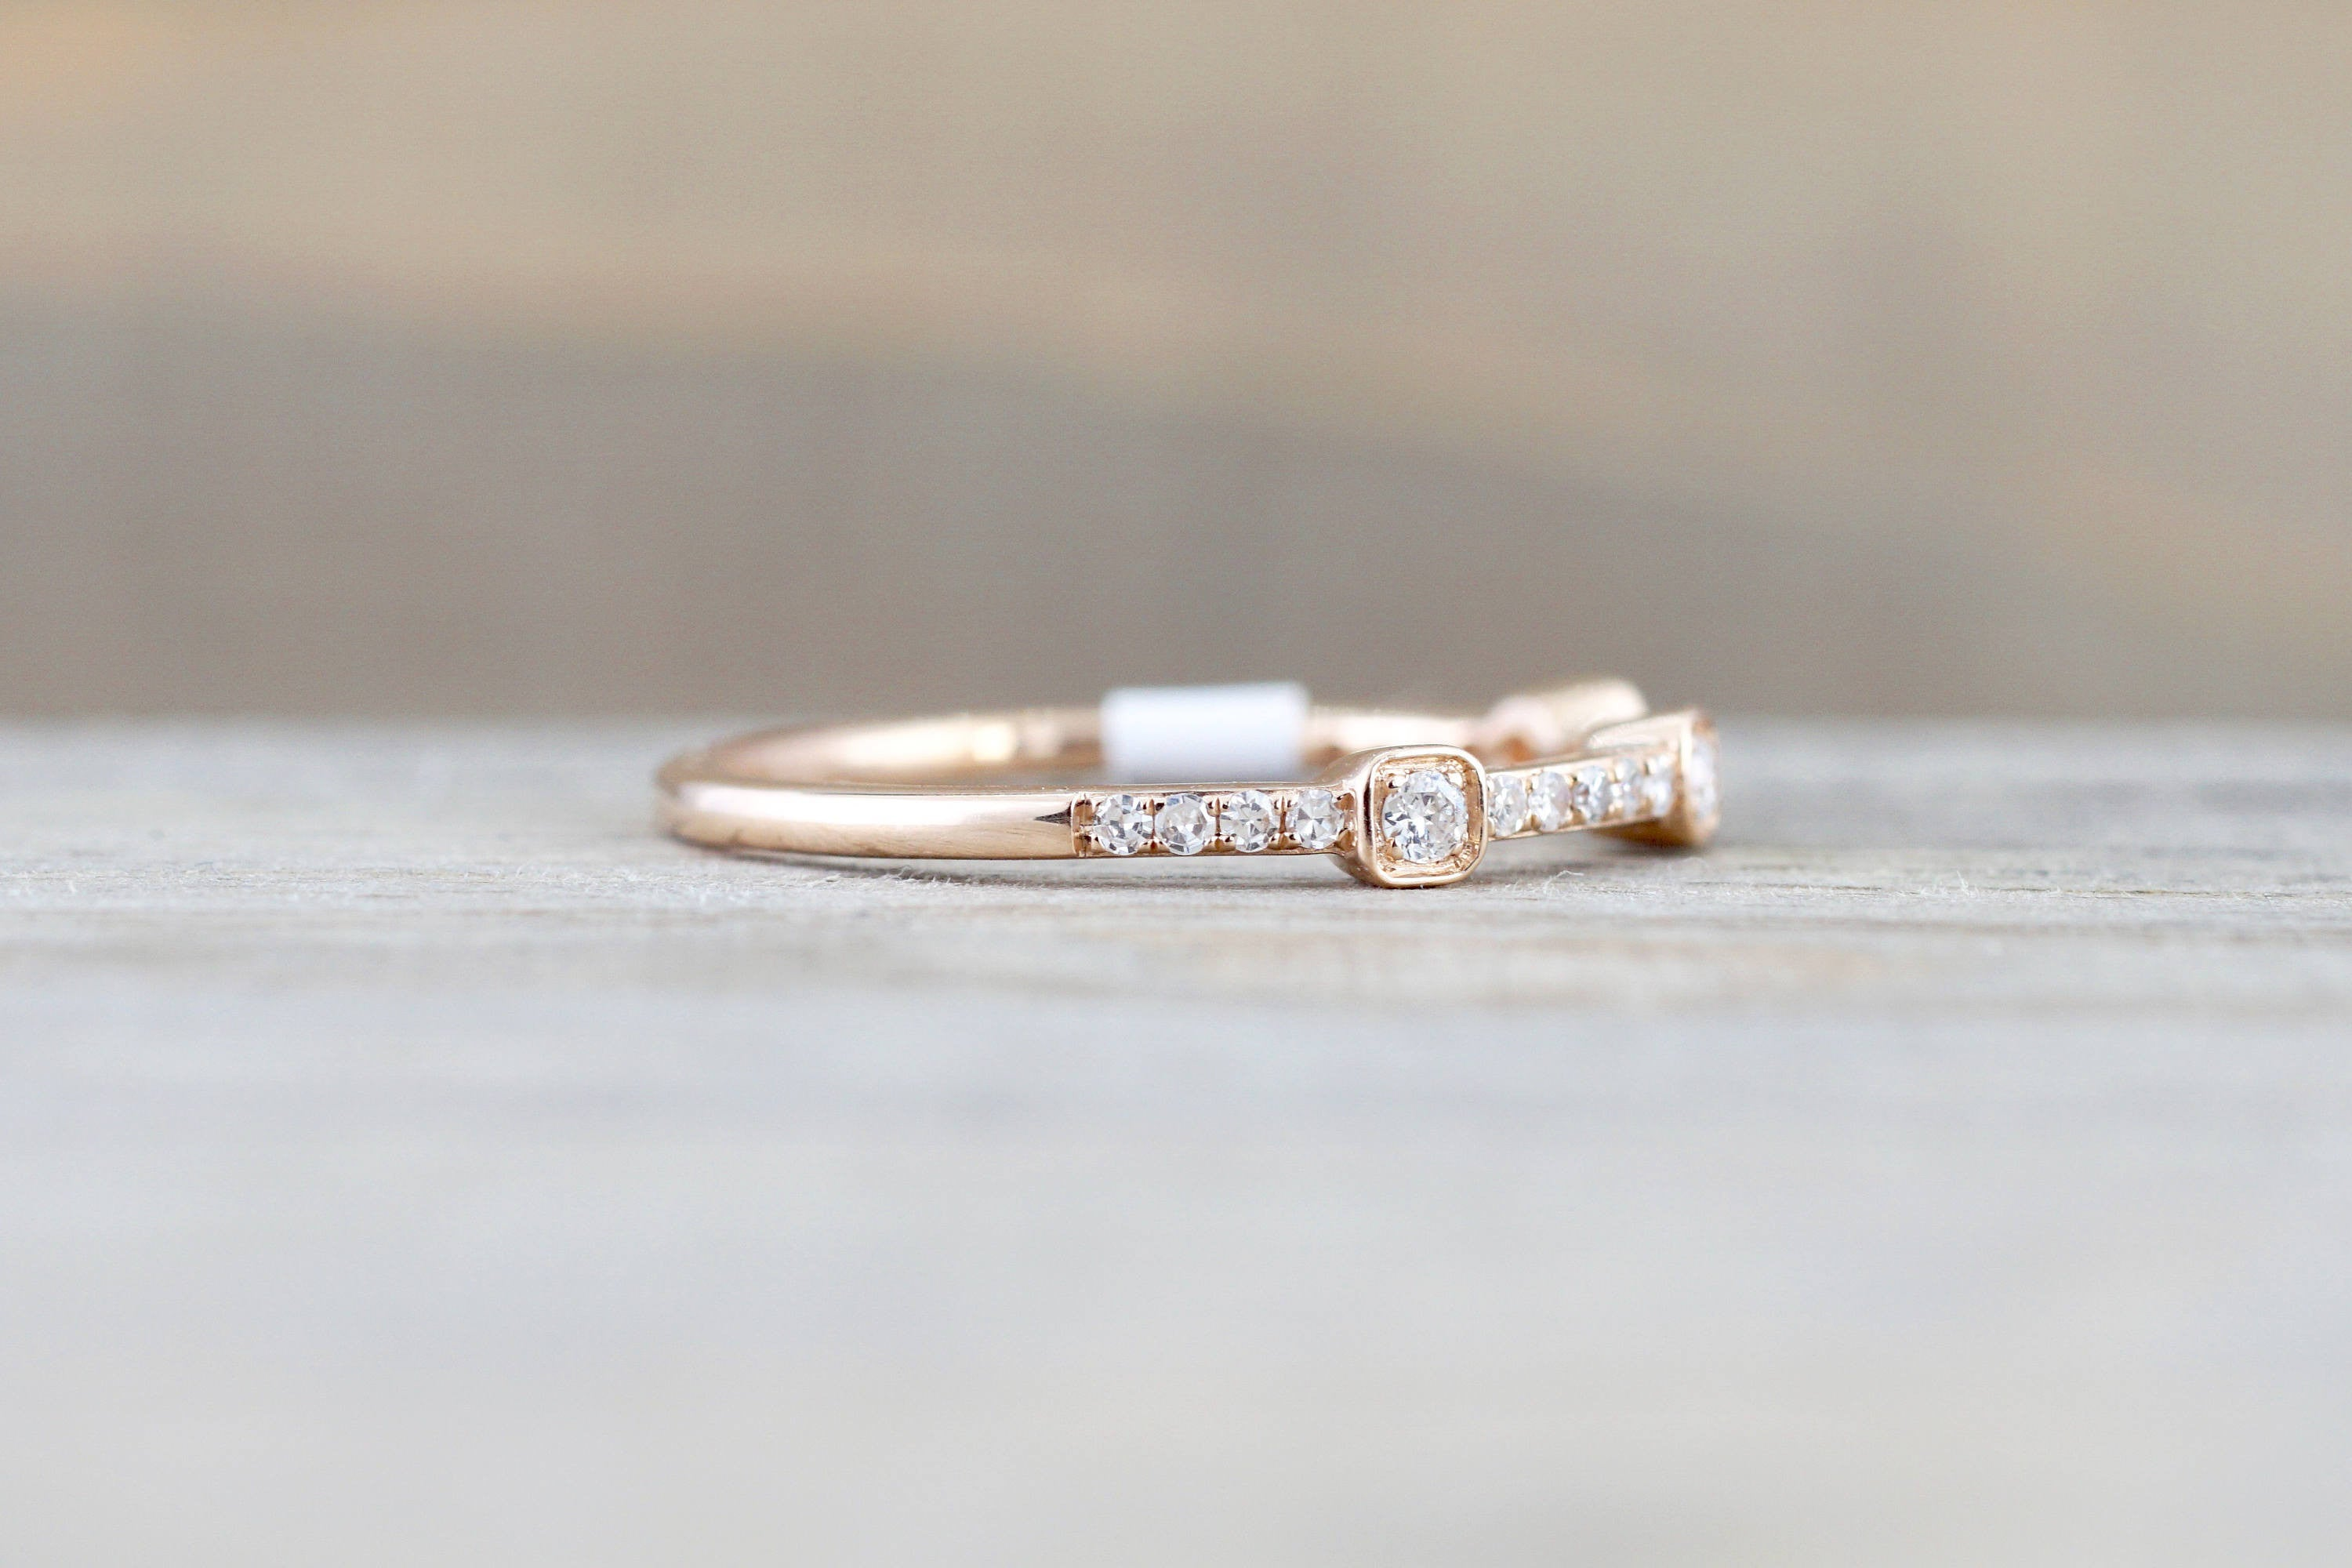 thin oval r wedding james solitaire bands rose with band engagementrings gold allen comments